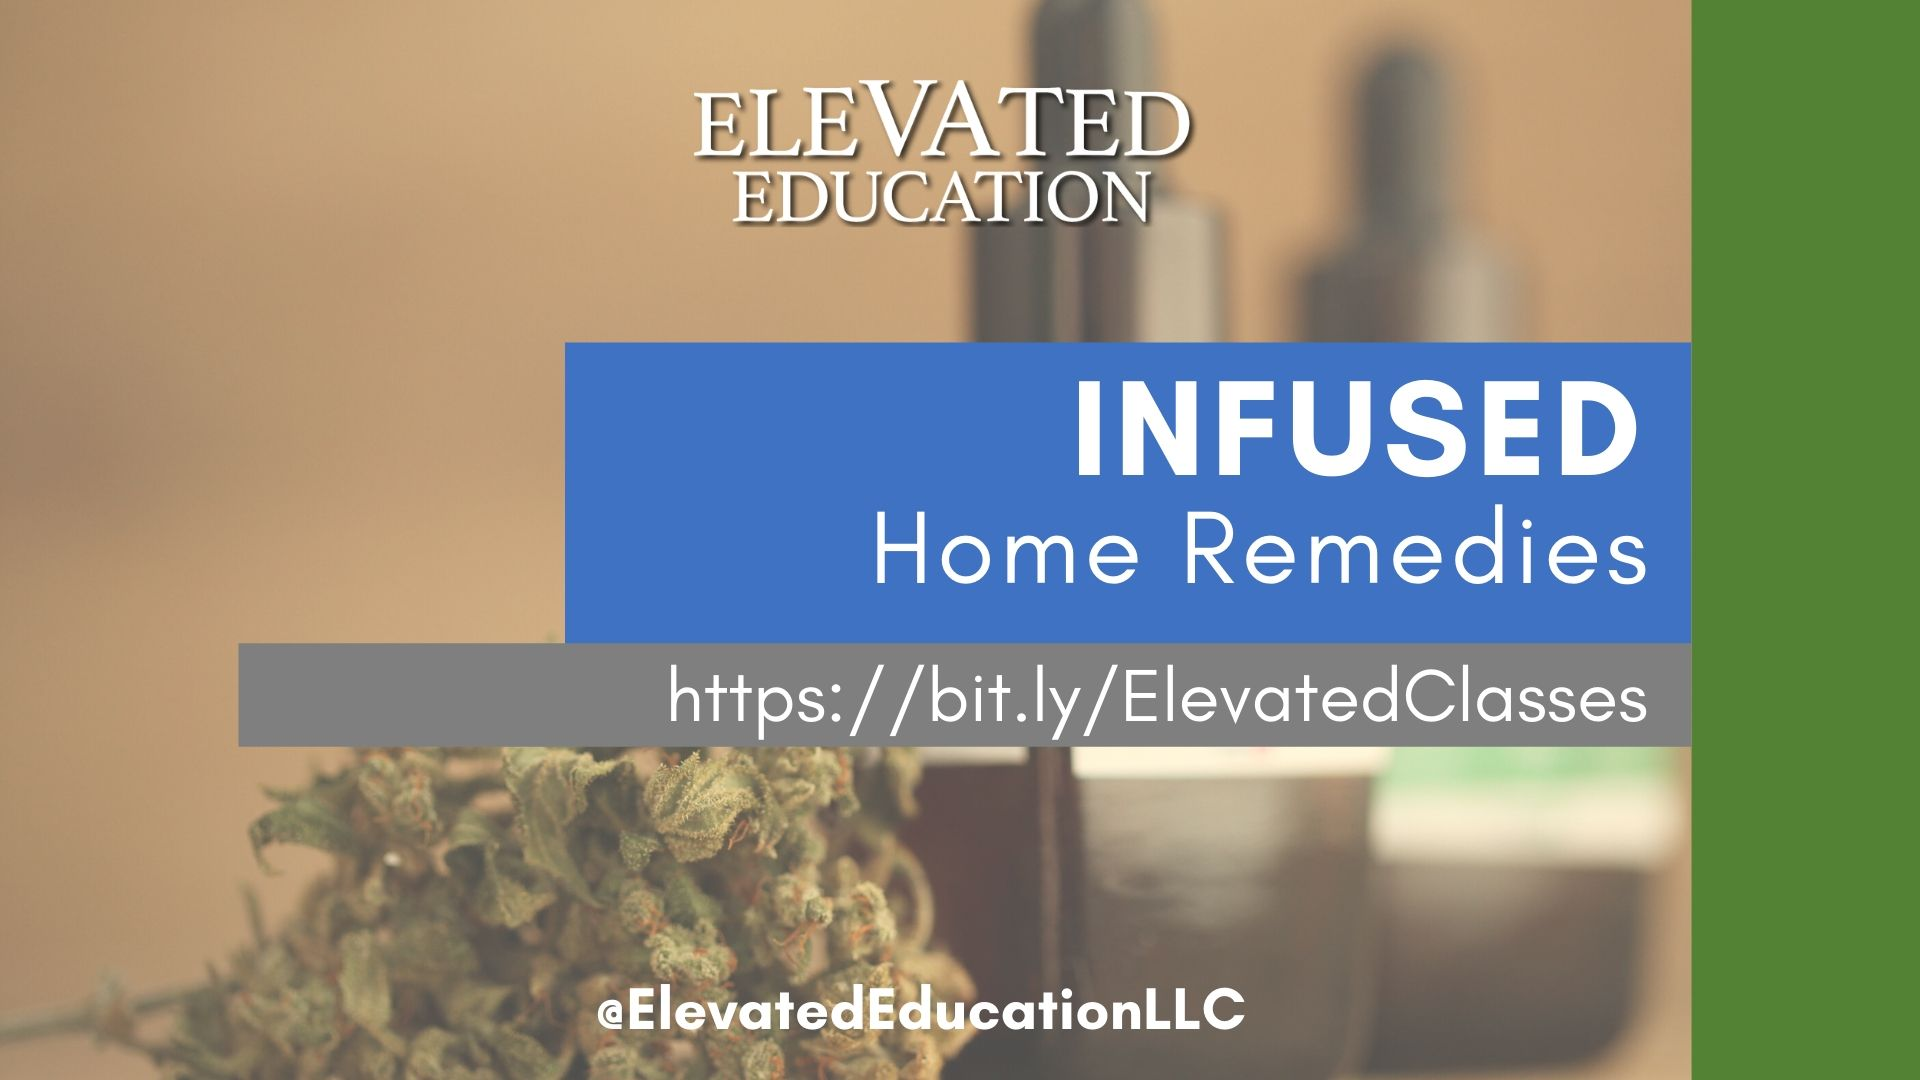 Infused Home Remedies (ONLINE) 0531